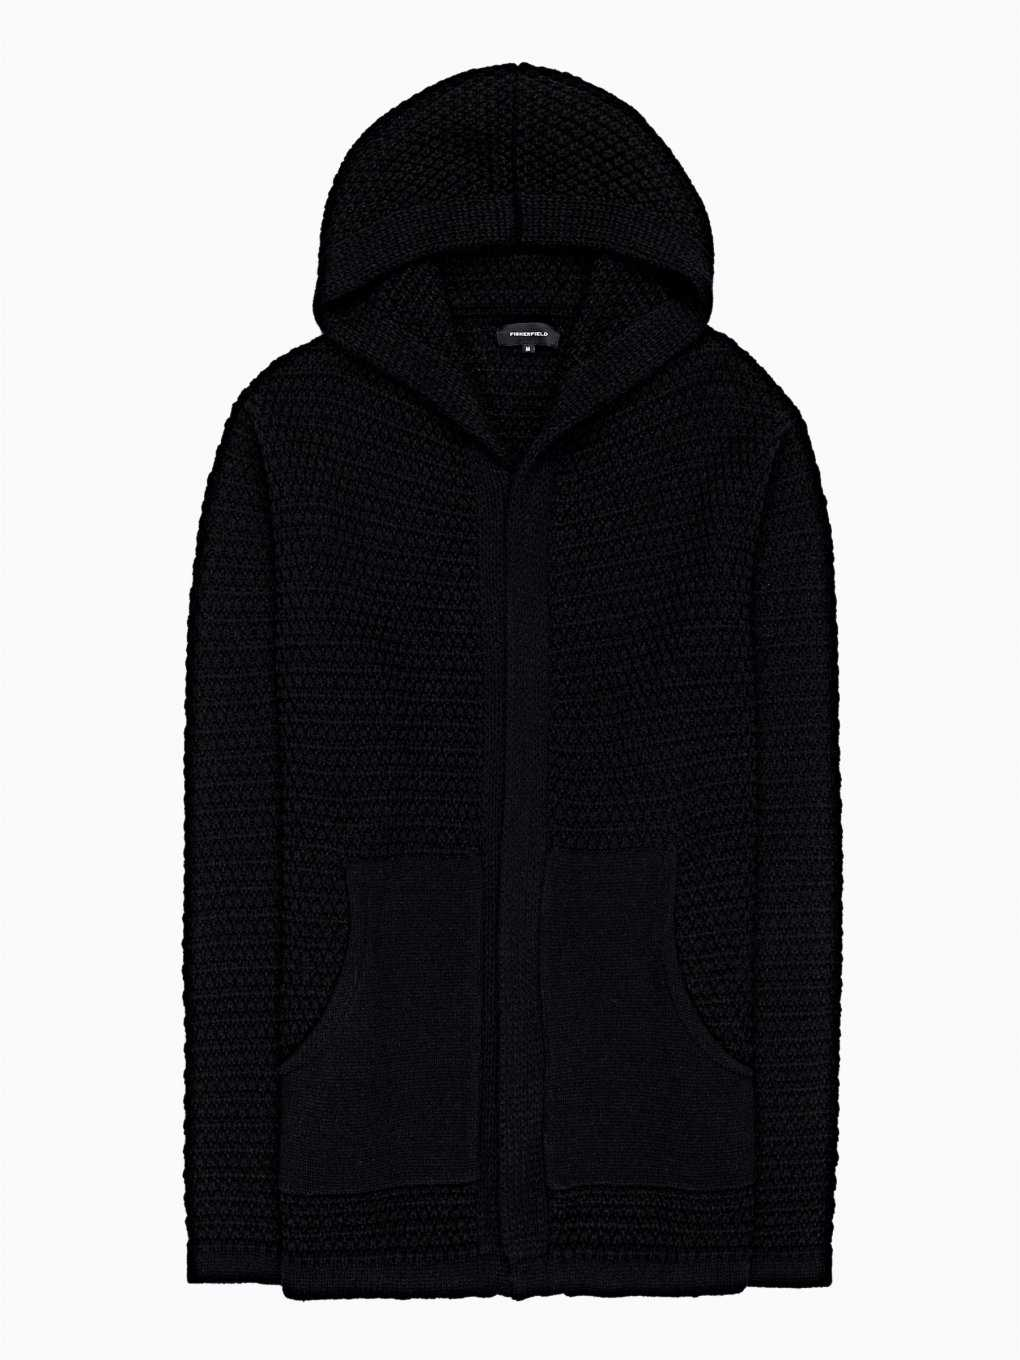 Longline zip-up cardingan with hood